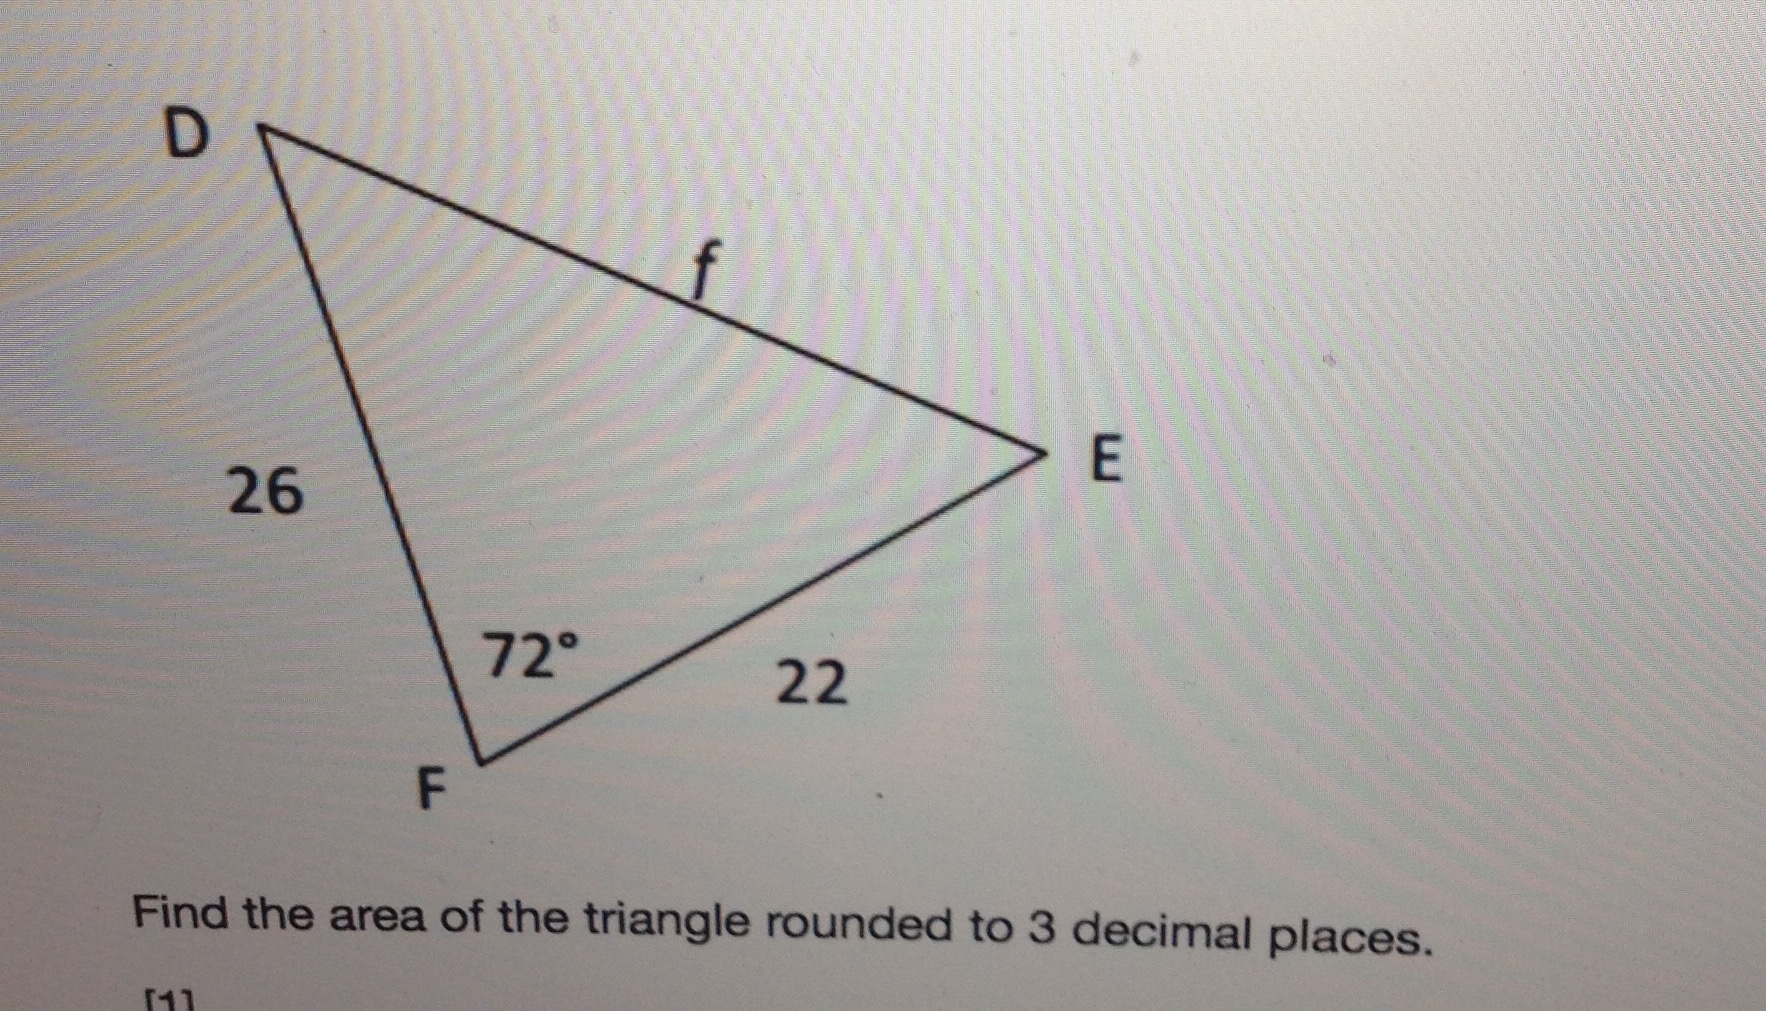 Dr 26 72 22 f find the area of the triangle rounde chegg image for find the area of the triangle rounded to 3 decimal places ccuart Gallery